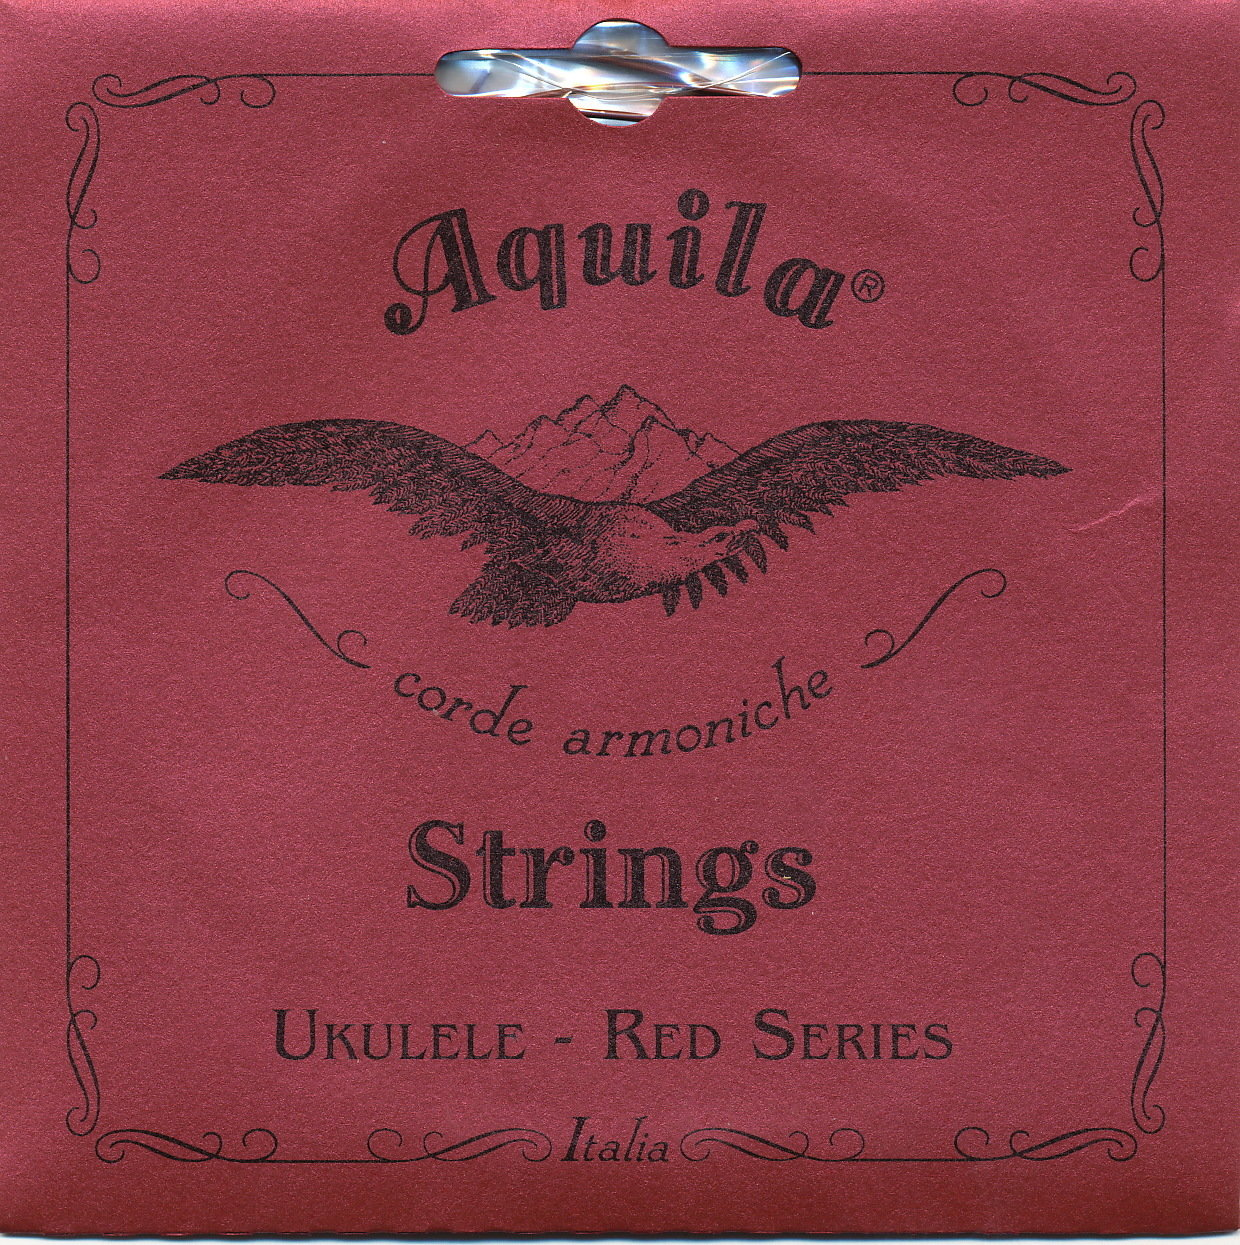 Aquila 86U Red Series - Concert Ukulele Strings - Low G Tuning - Best Value in Upgrading Your Ukulele Strings!